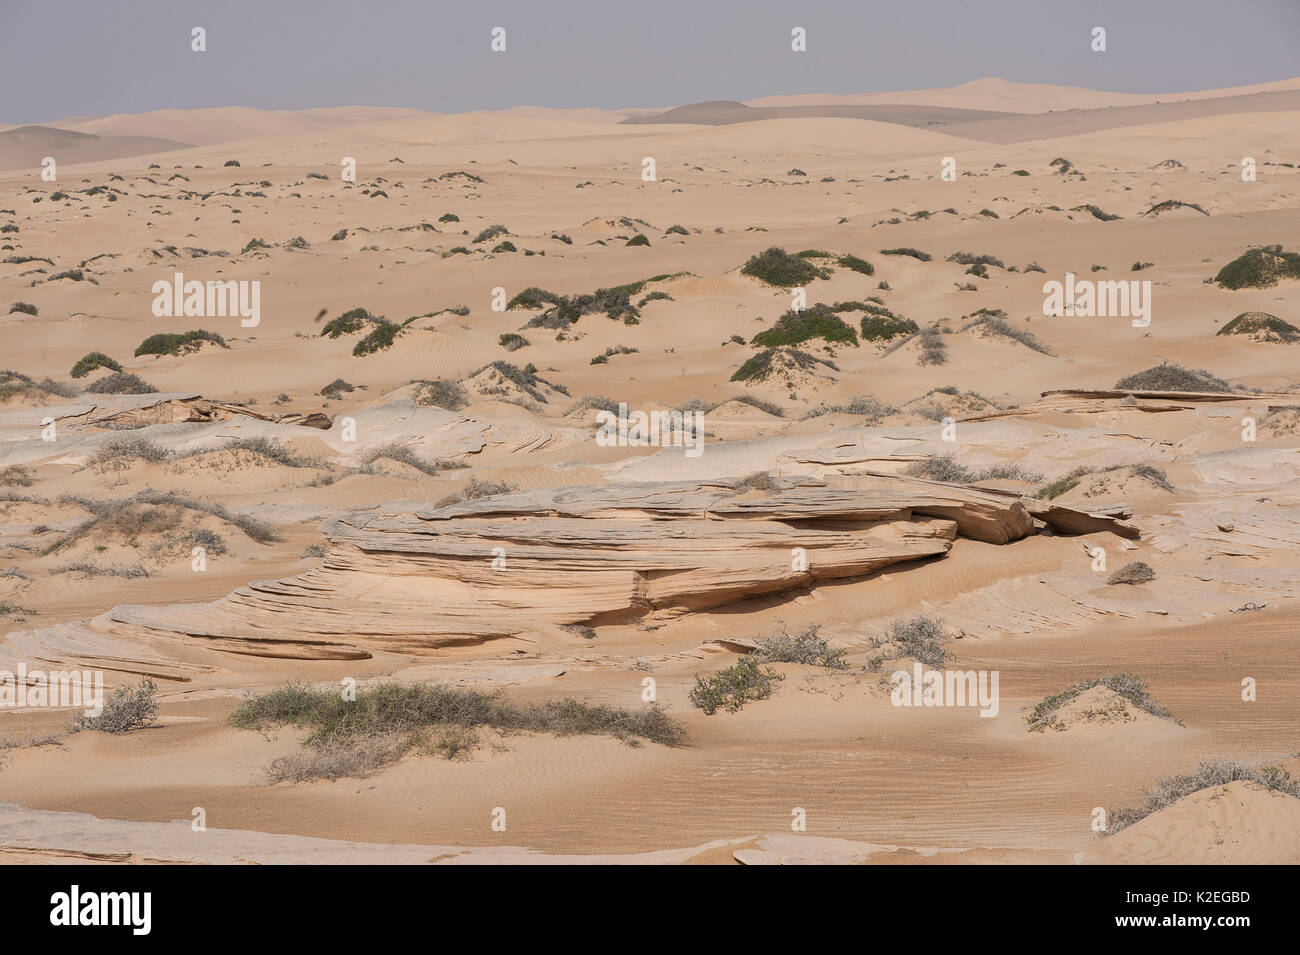 Typical sand desert with sandstone outcrops and sparse vegetation, Rimal Al Wahiba desert, Sultanate of Oman, February. - Stock Image